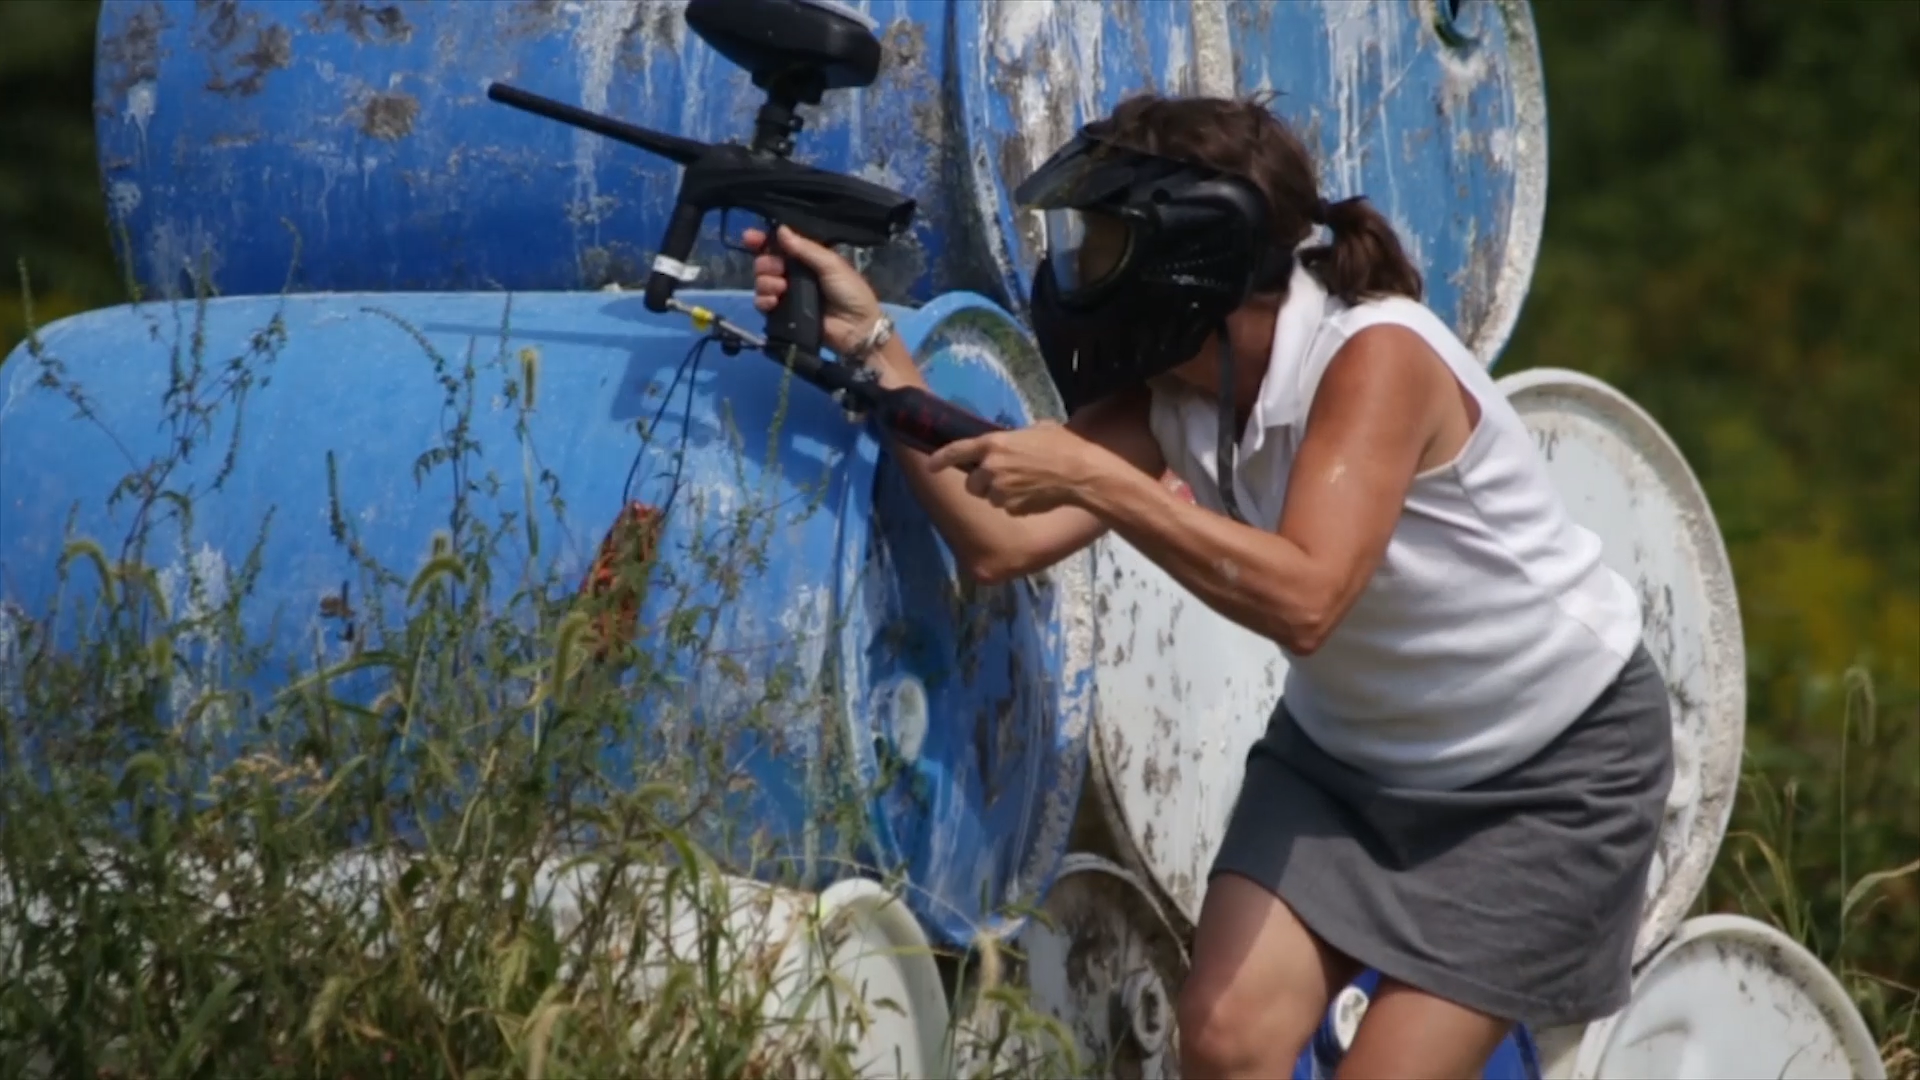 Mom Playing Paintball